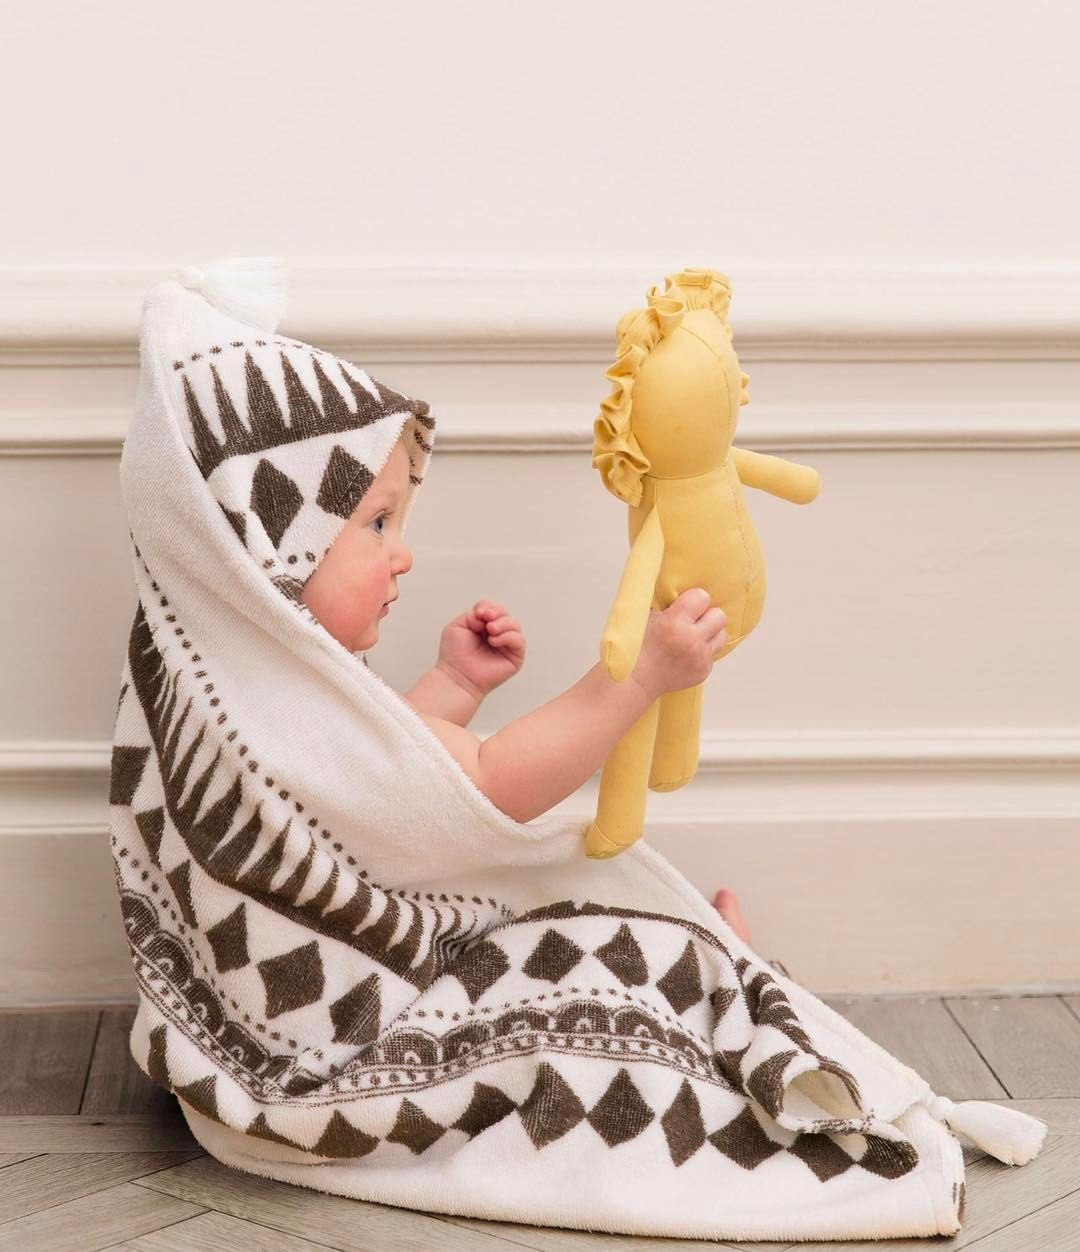 ca39b023029 @elodiedetails Home is where your Sweet Honey Harry is! #elodiedetails  #bathcape #bath #kidsfashion #kidsroom #graphic #pacifierclip #pacifier